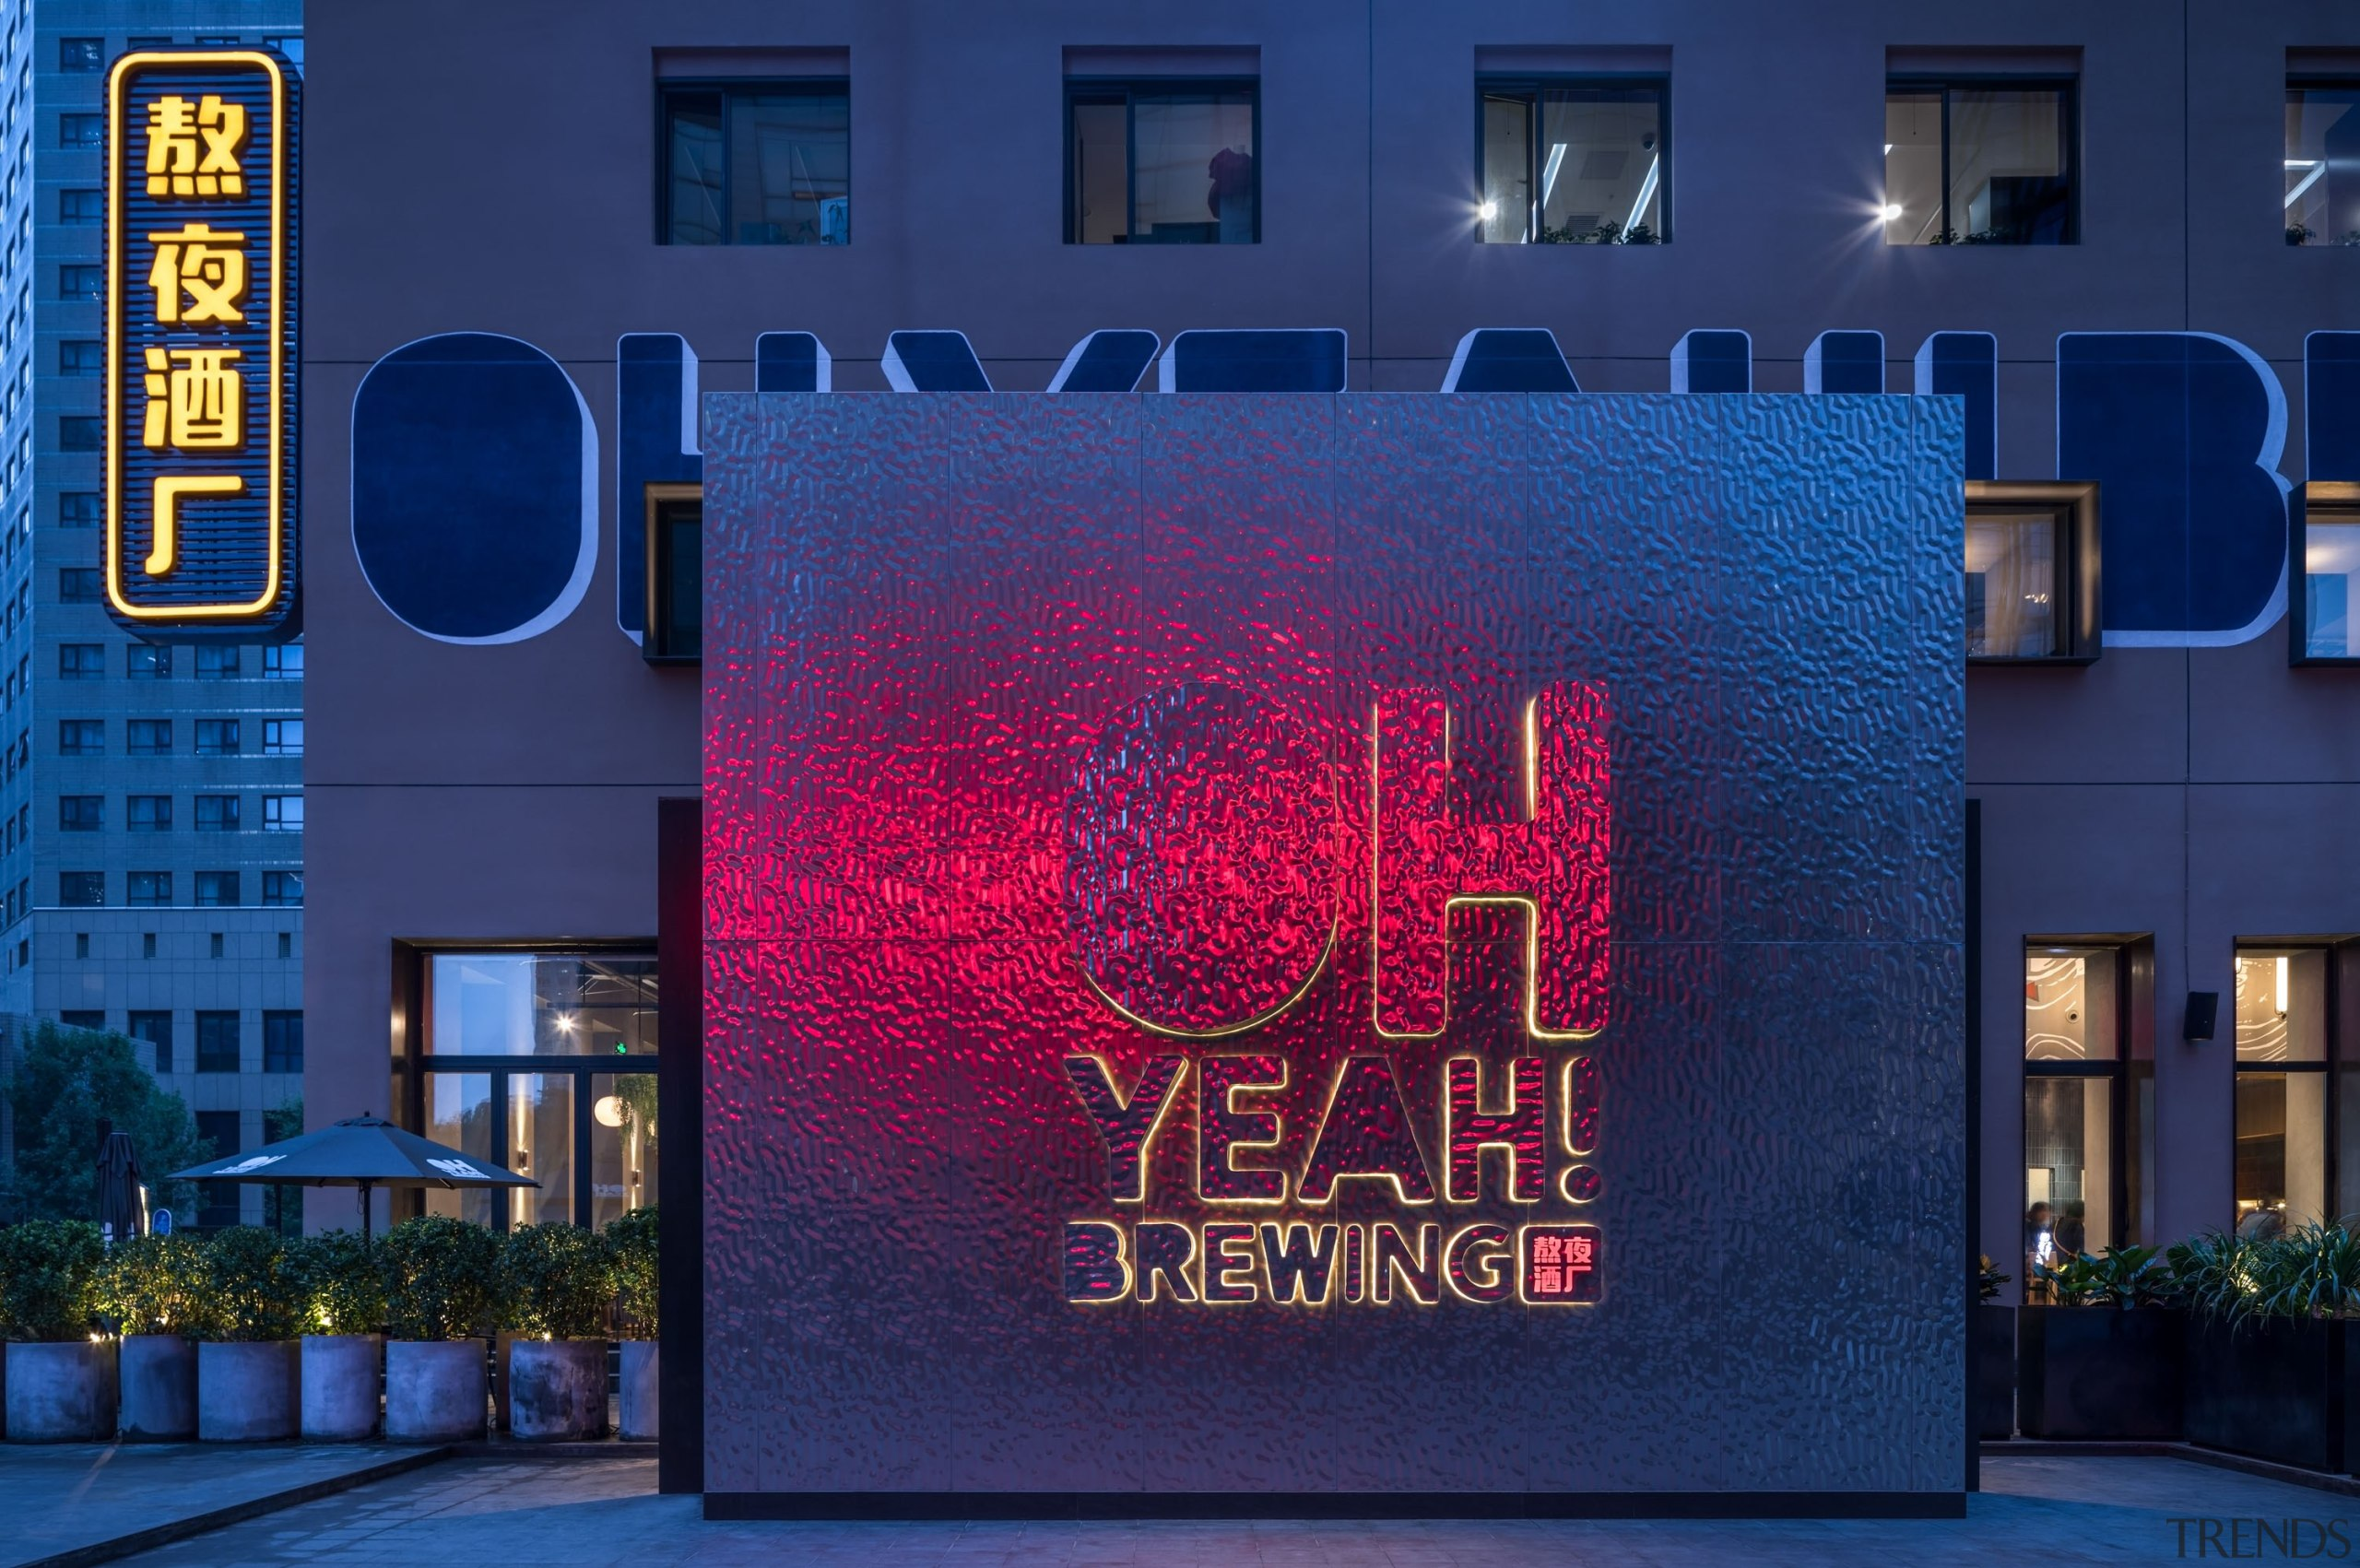 """On the exterior, the large fontlettering of """"Oh advertising, architecture, blue, building, electronic signage, facade, font, light, lighting, neon, night, real estate, signage, technology, blue"""